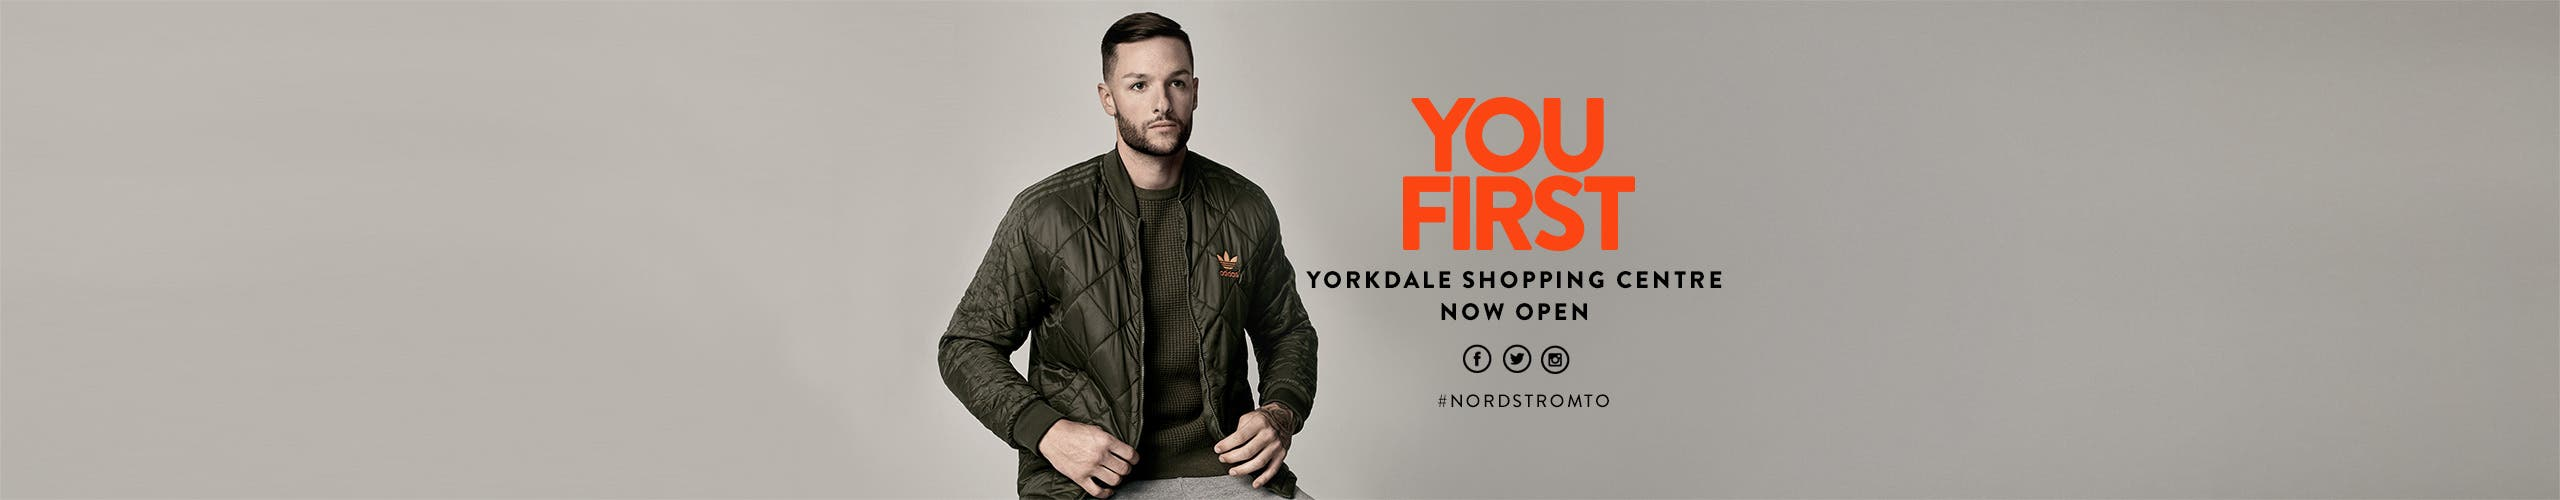 Toronto: you first. Yorkdale Shopping Centre now open.